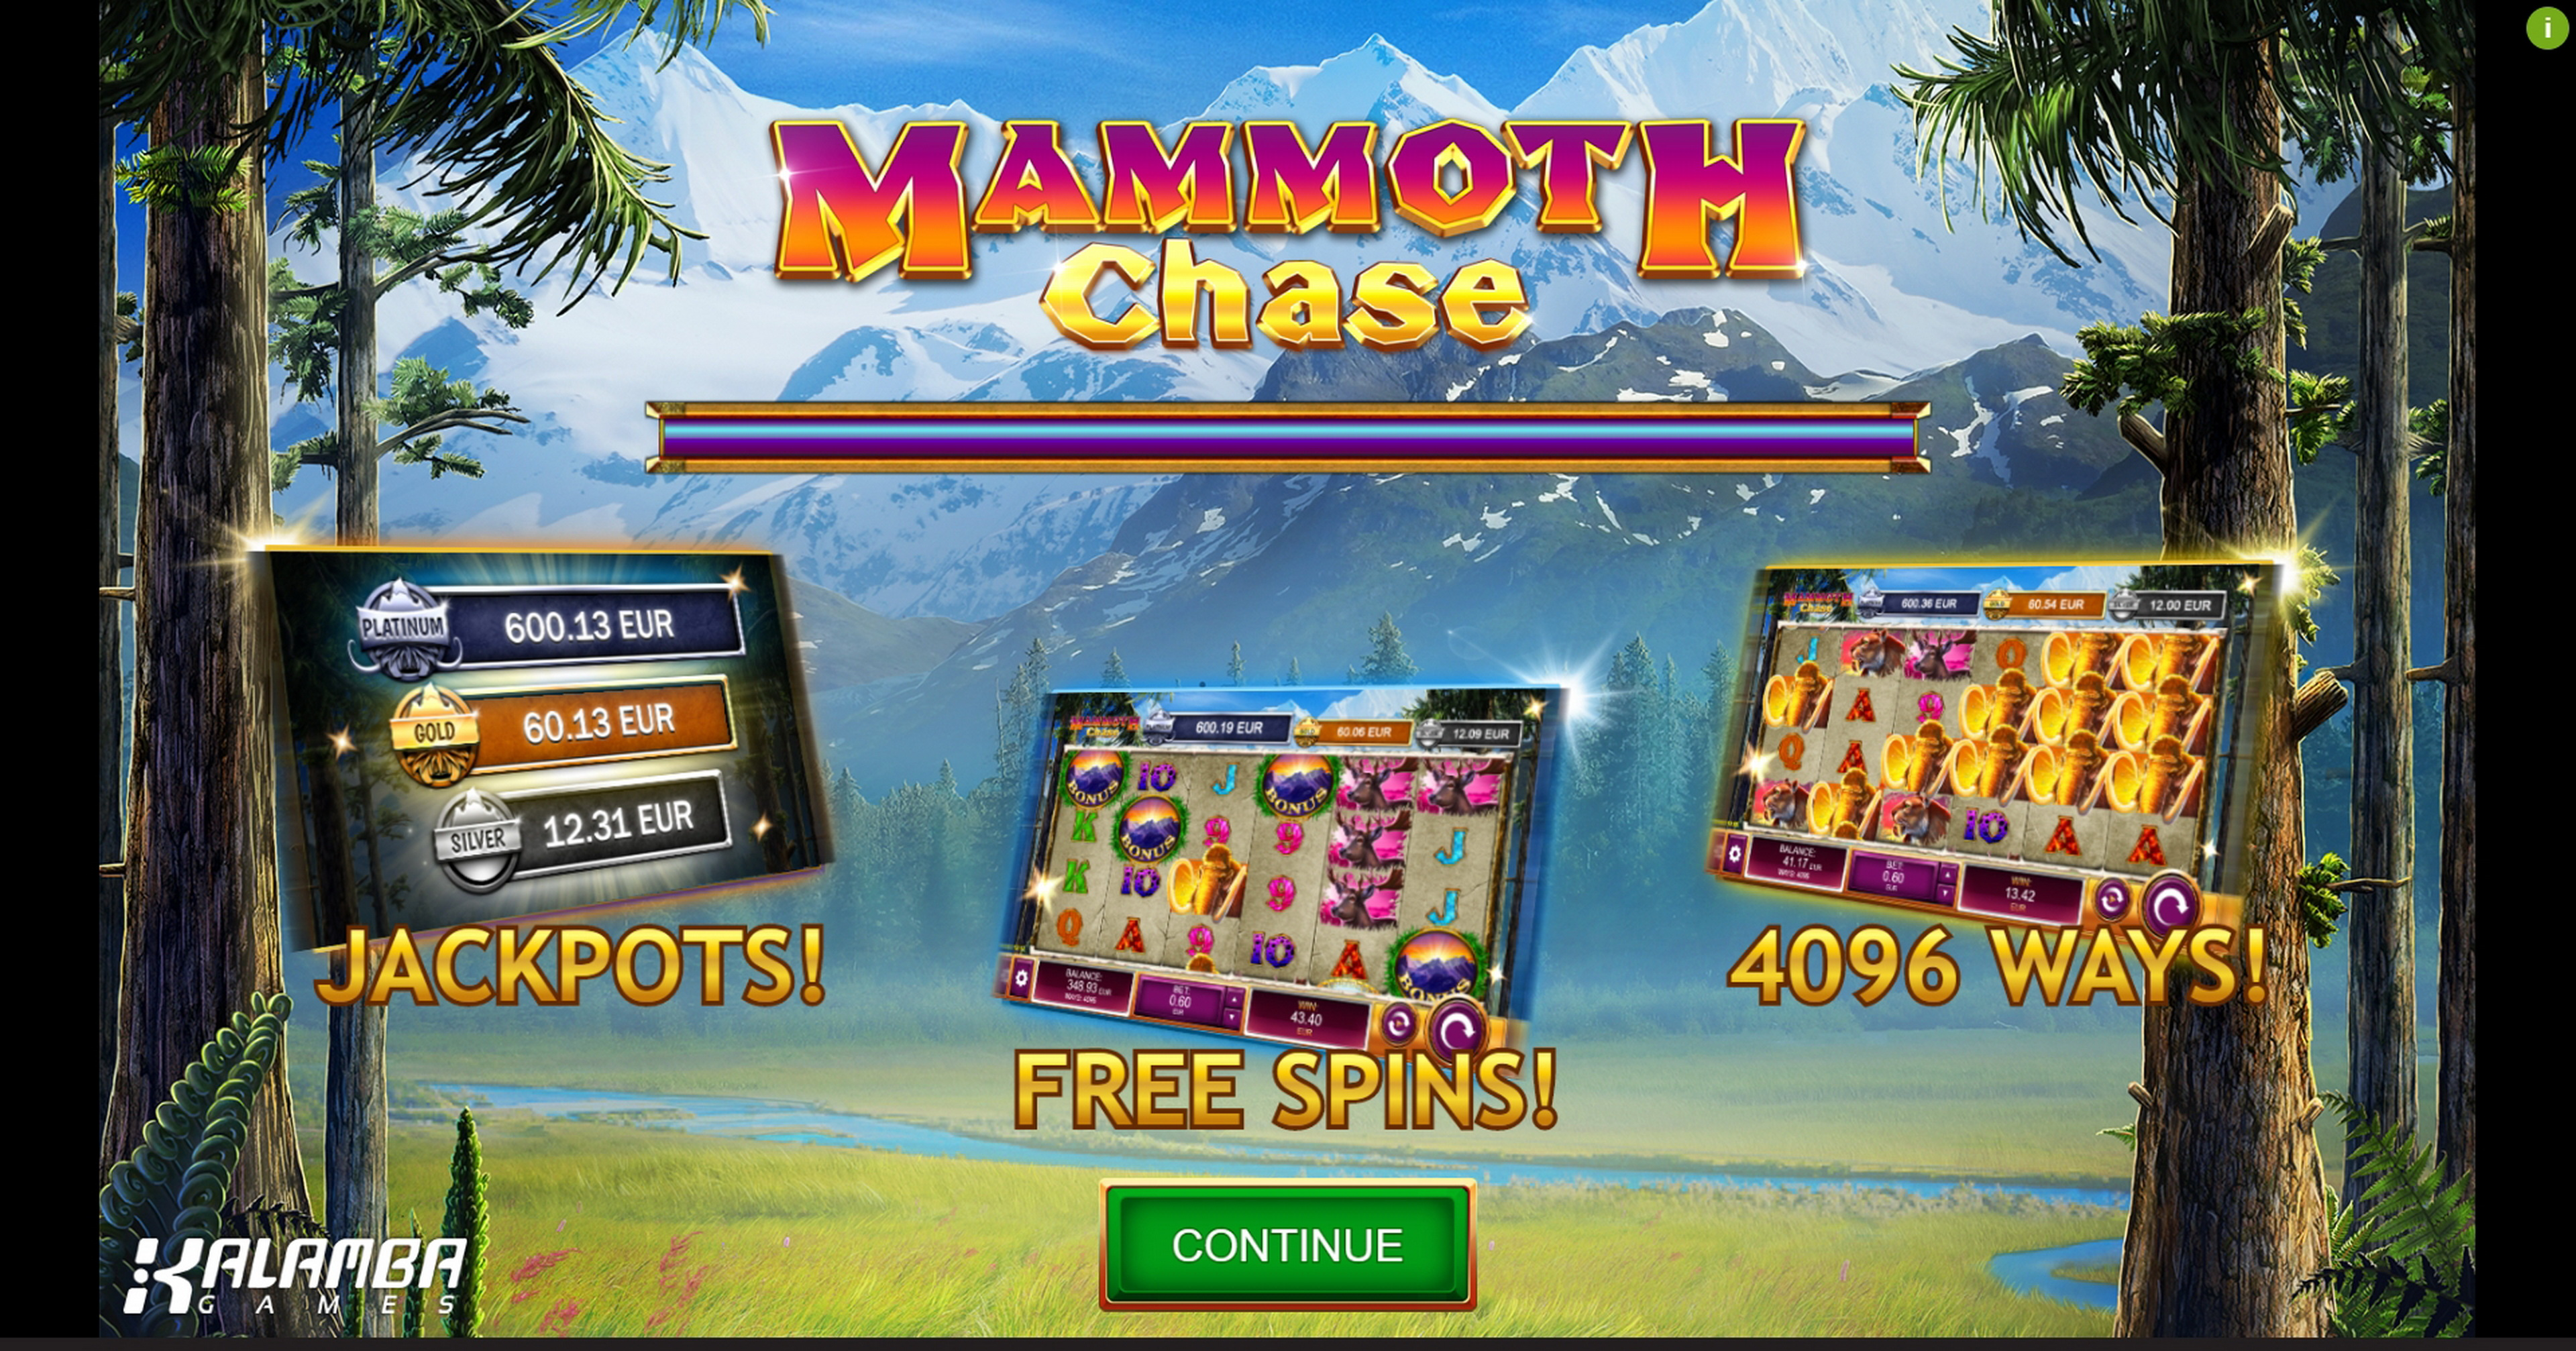 Play Mammoth Chase Free Casino Slot Game by Kalamba Games